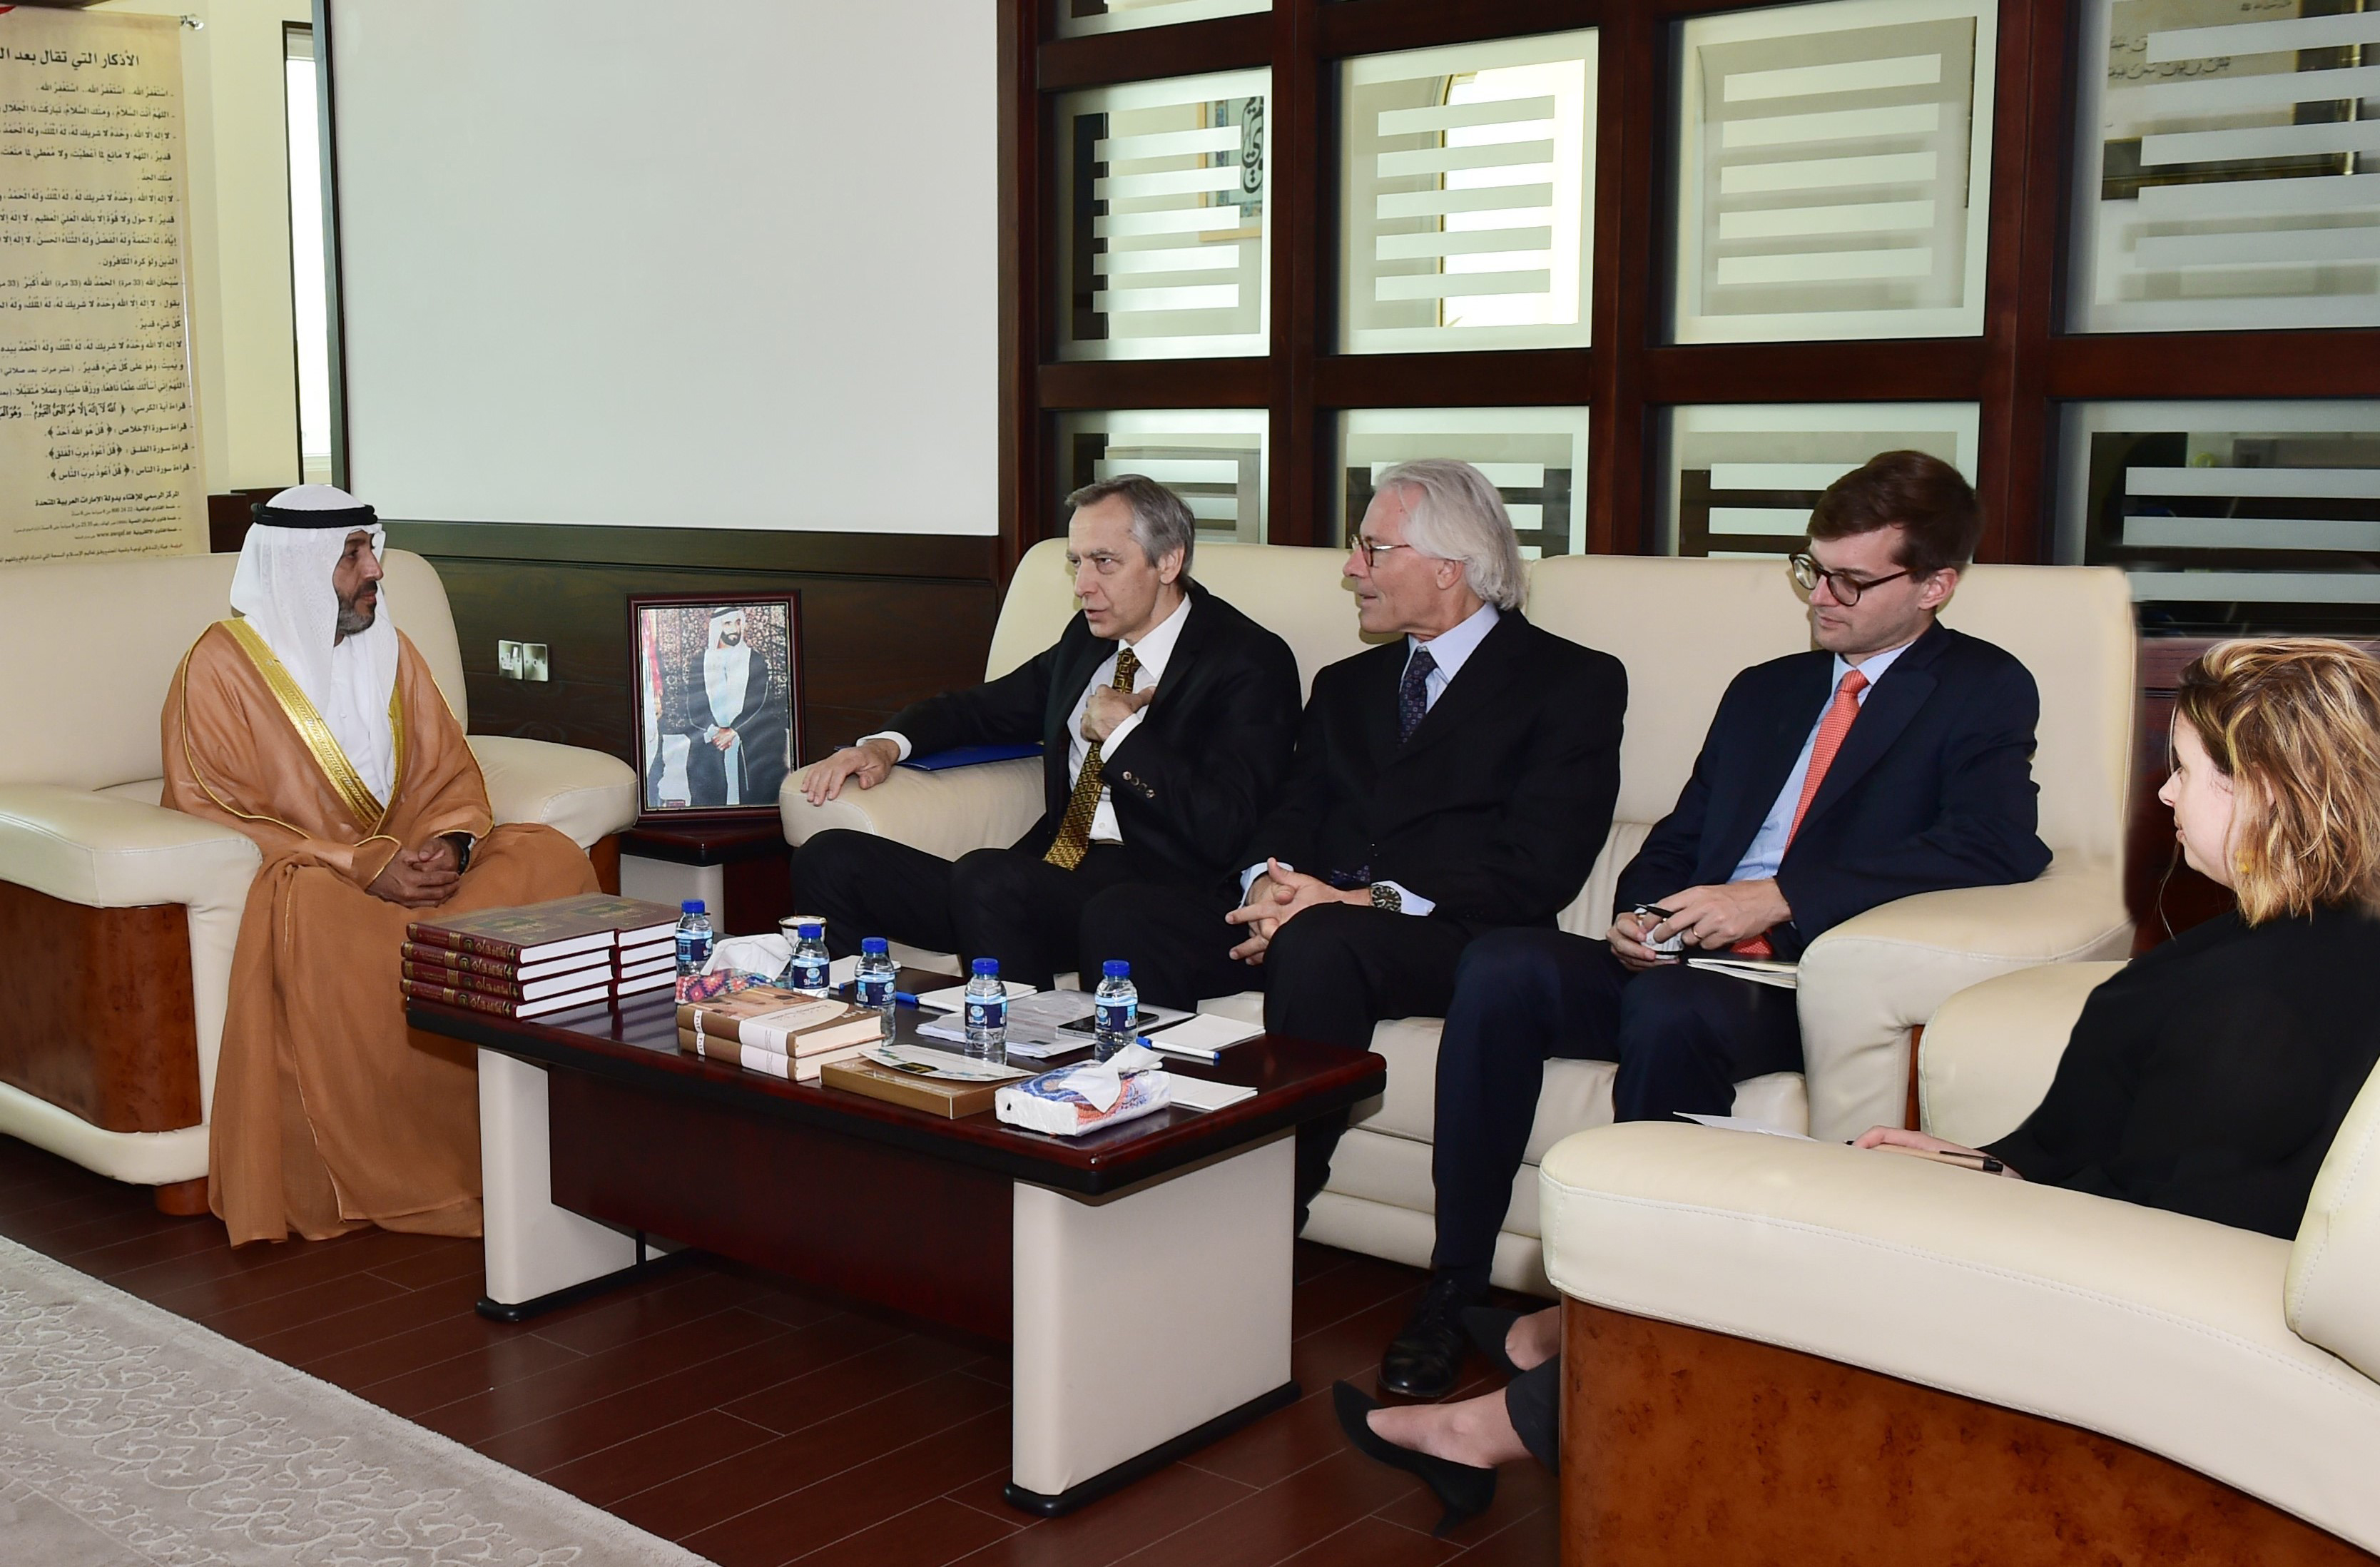 The European Union's Special Envoy for the Promotion of Freedom of Religion visits Awqaf